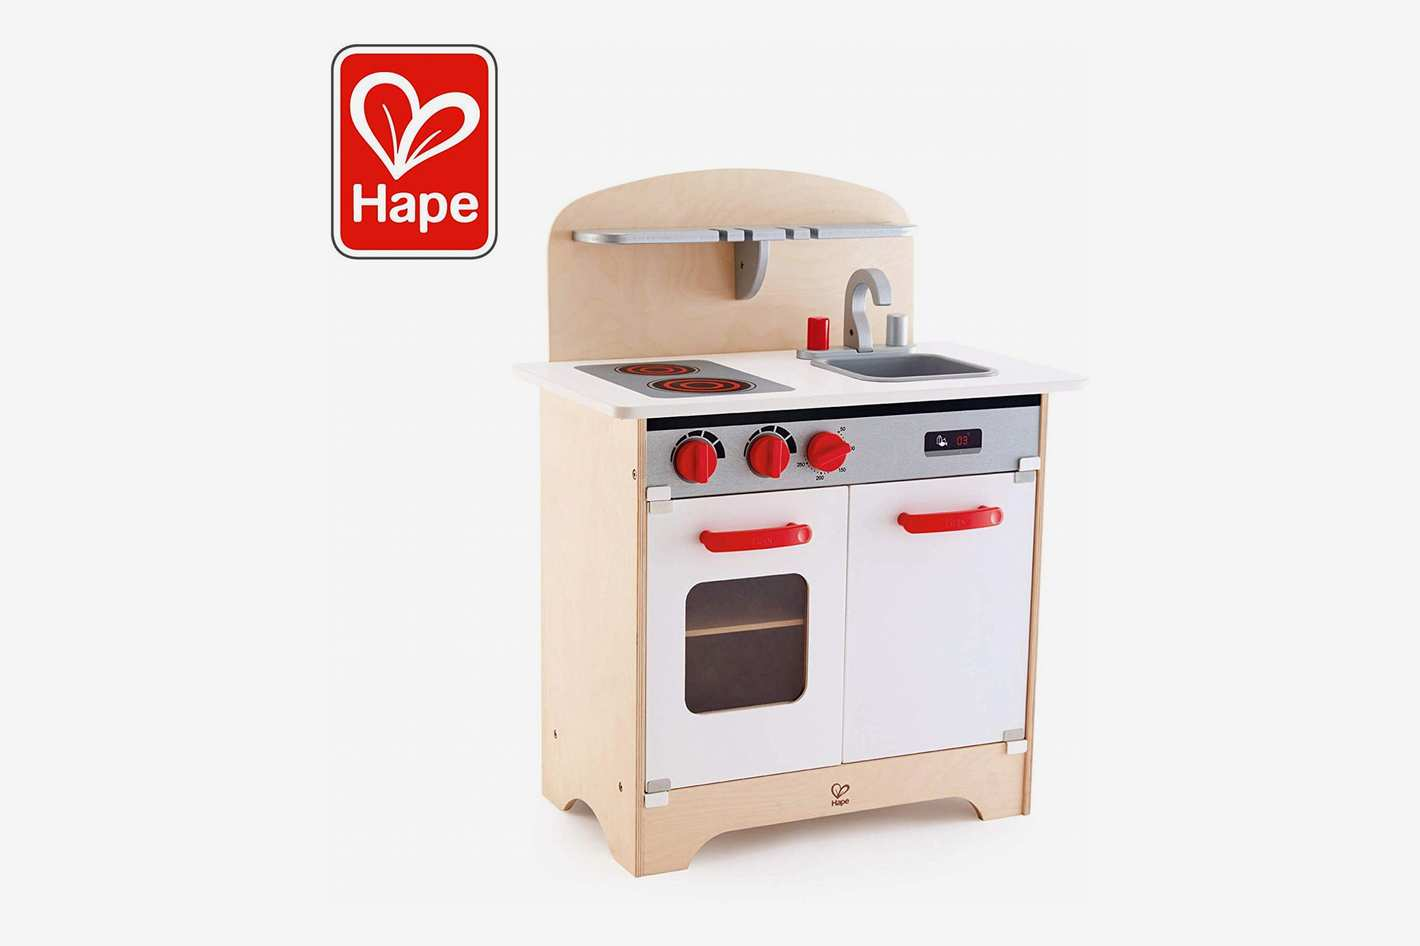 Hape Gourmet Kitchen Toy Fully Equipped Wooden Pretend Play Kitchen